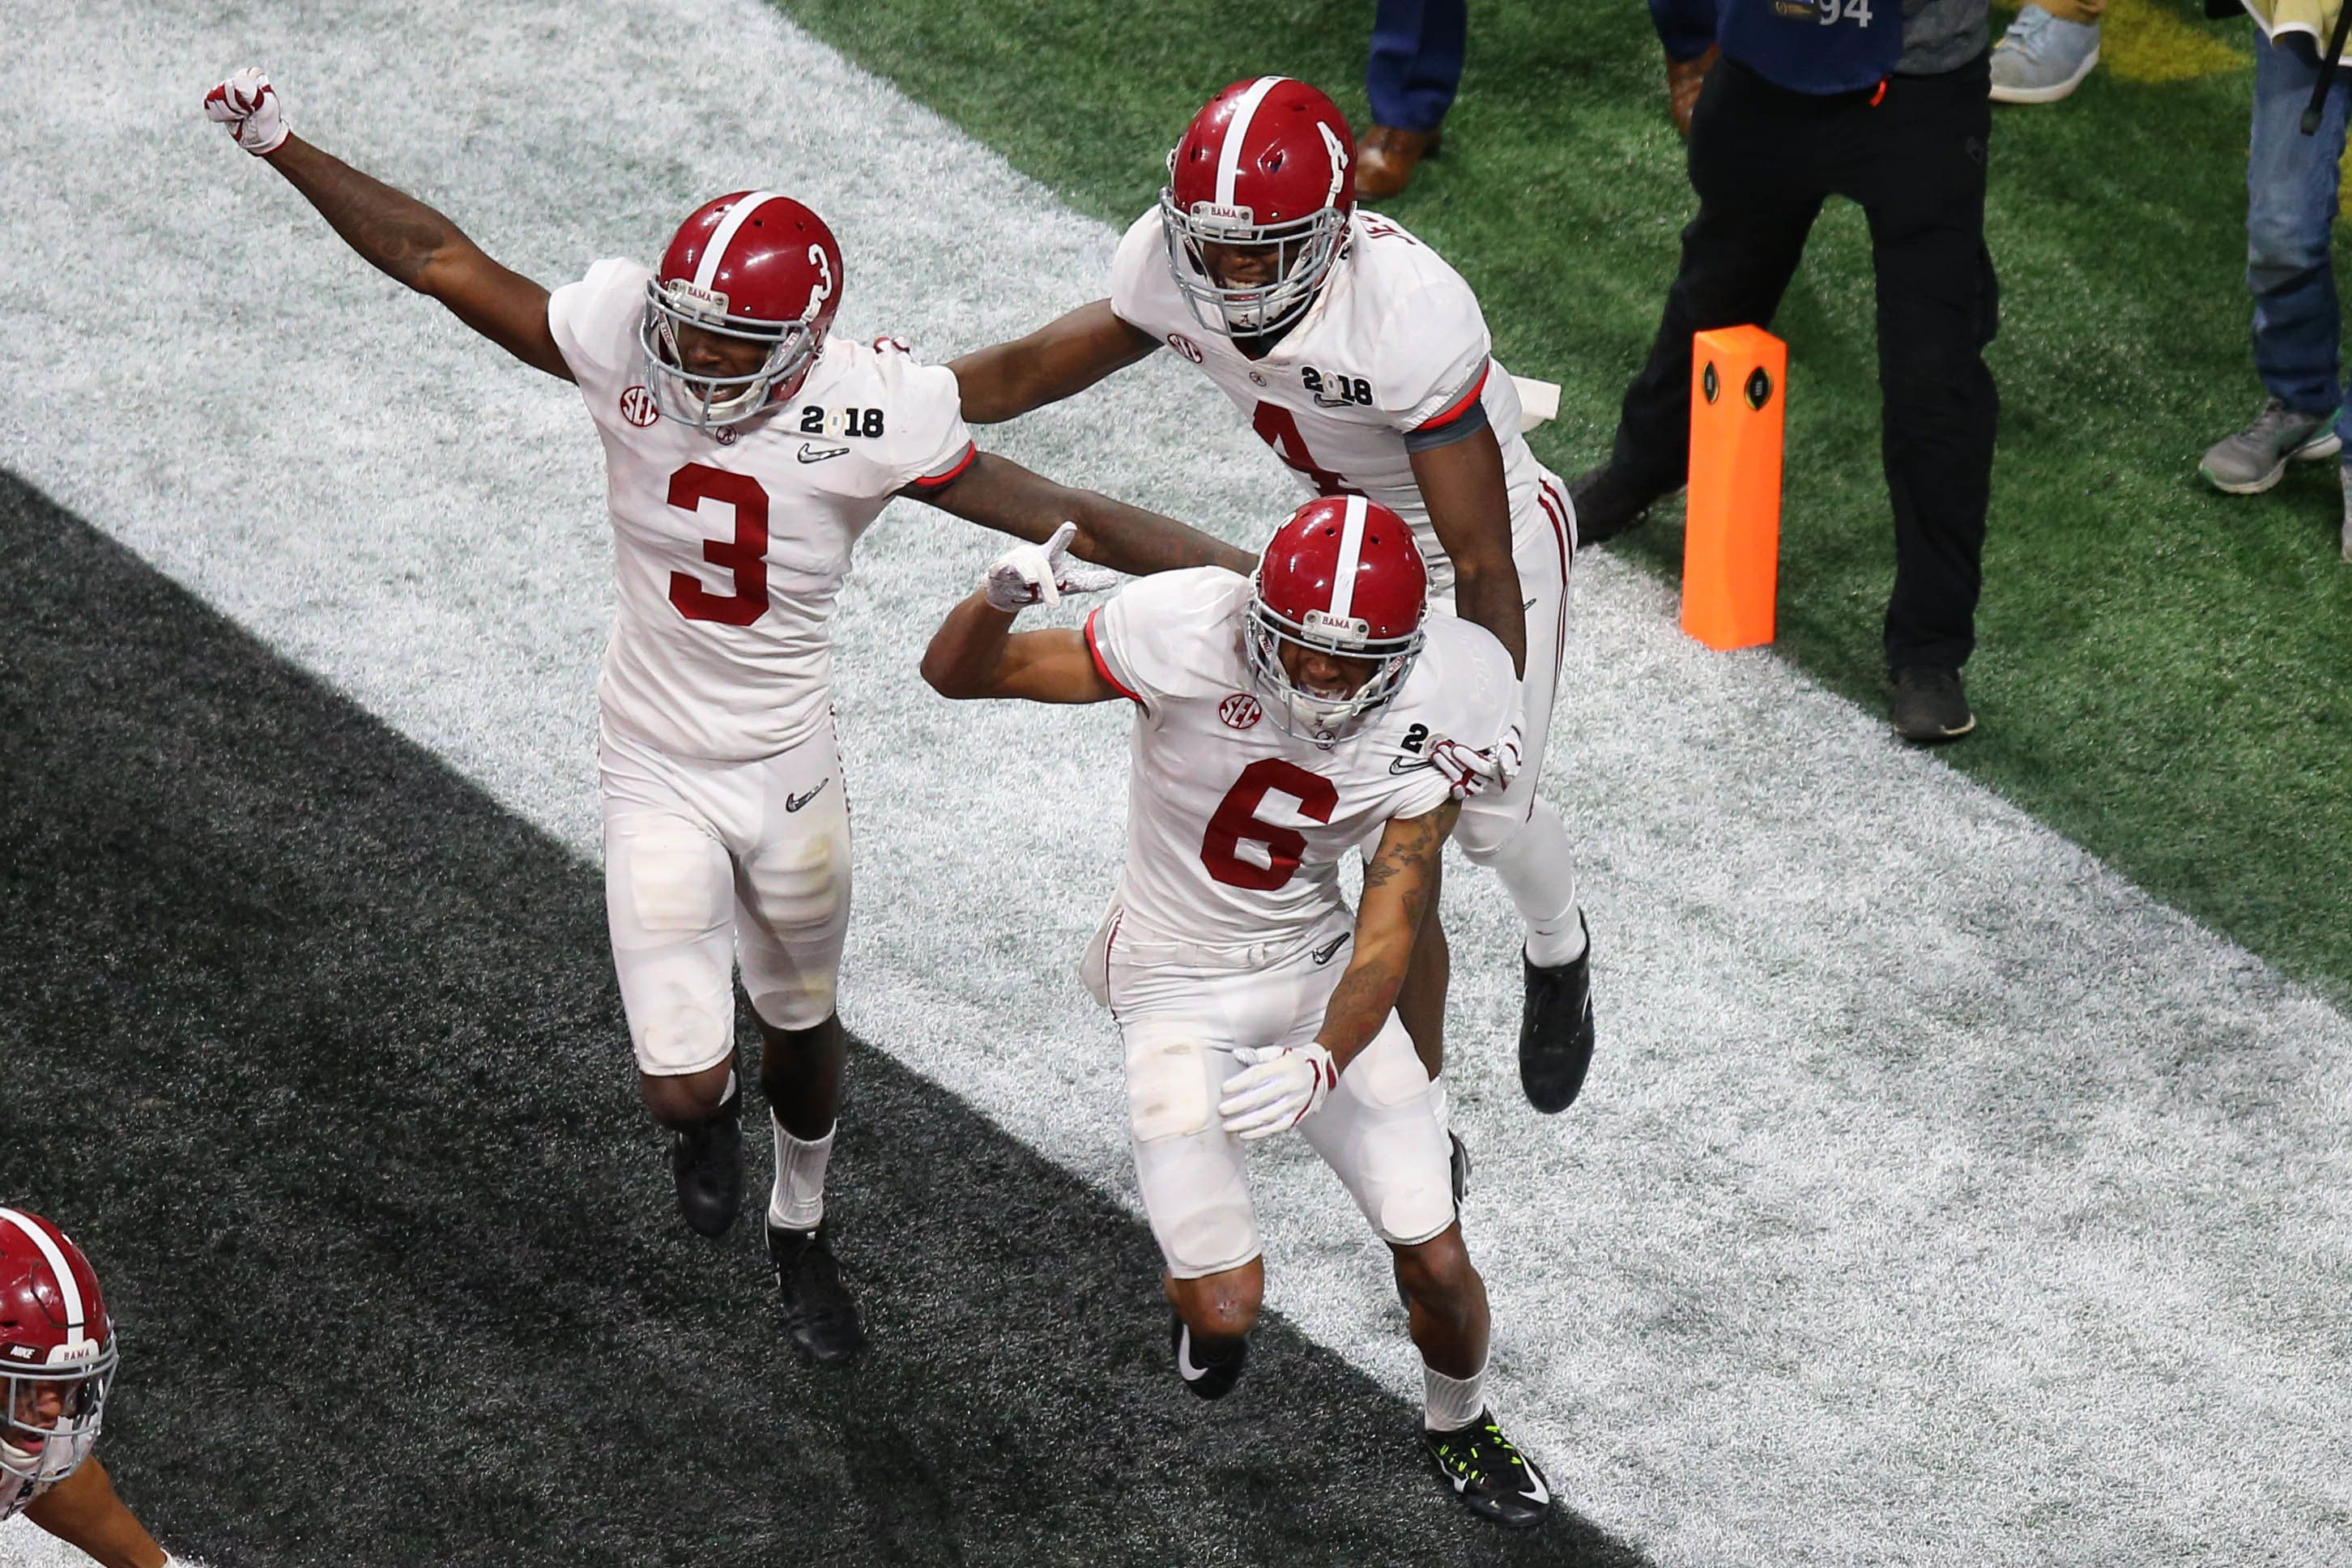 Jan 8, 2018; Atlanta, GA, USA; Alabama Crimson Tide wide receiver DeVonta Smith (6) celebrates his game-winning touchdown in overtime against the Georgia Bulldogs in the 2018 CFP national championship college football game at Mercedes-Benz Stadium. Mandatory Credit: Butch Dill-USA TODAY Sports